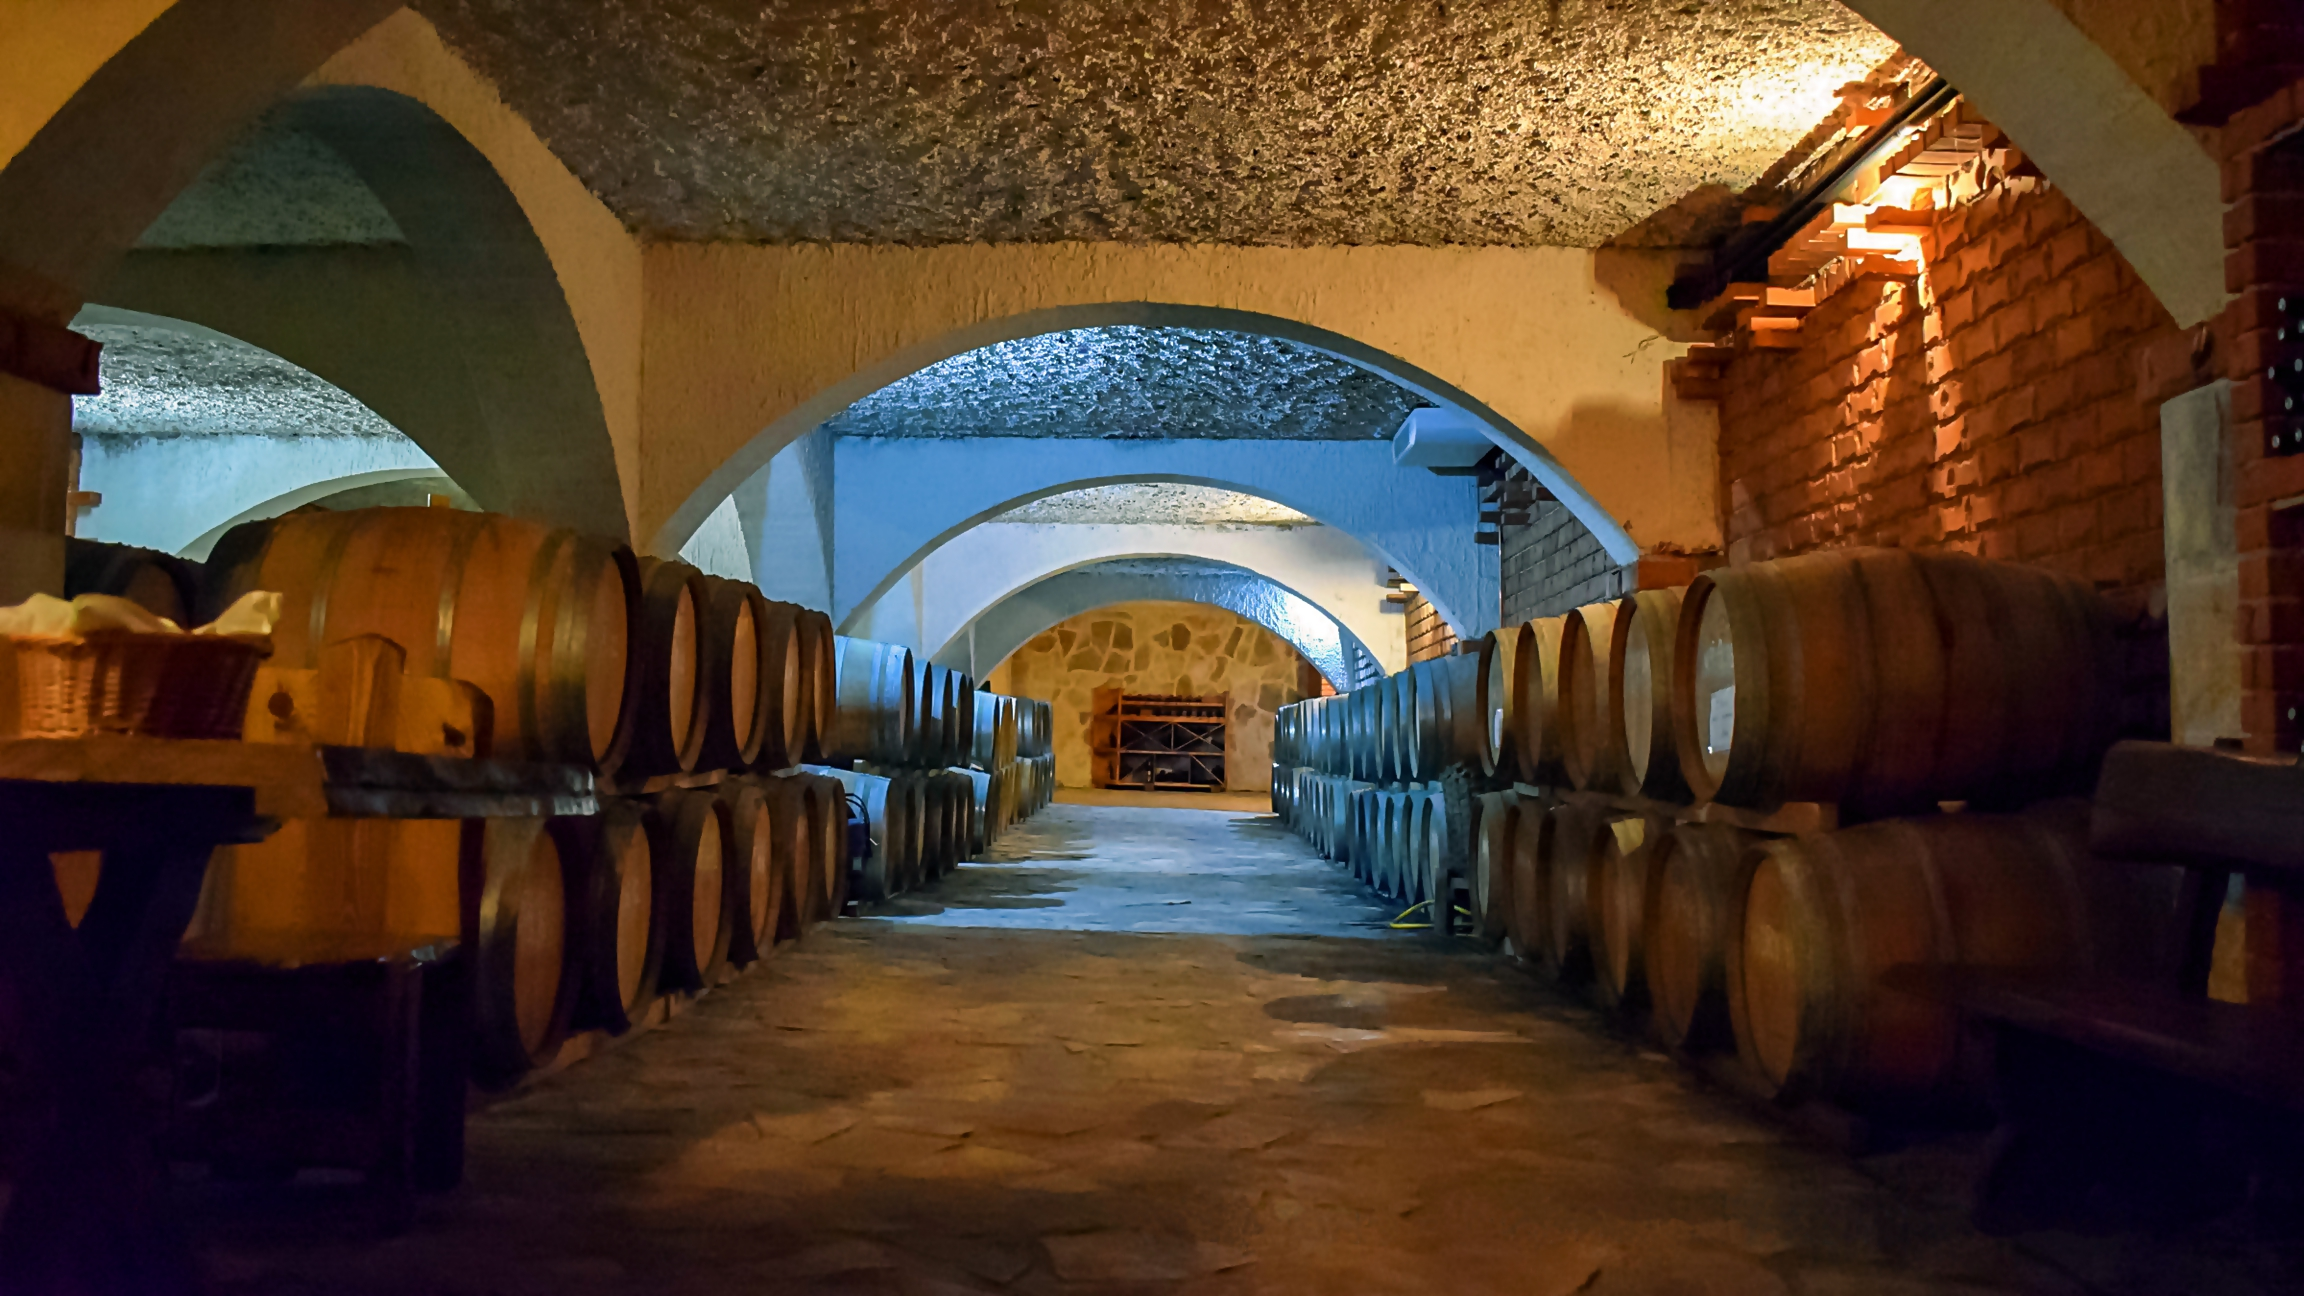 Visit the Wine Cellars on St. Martin's Day in Croatia